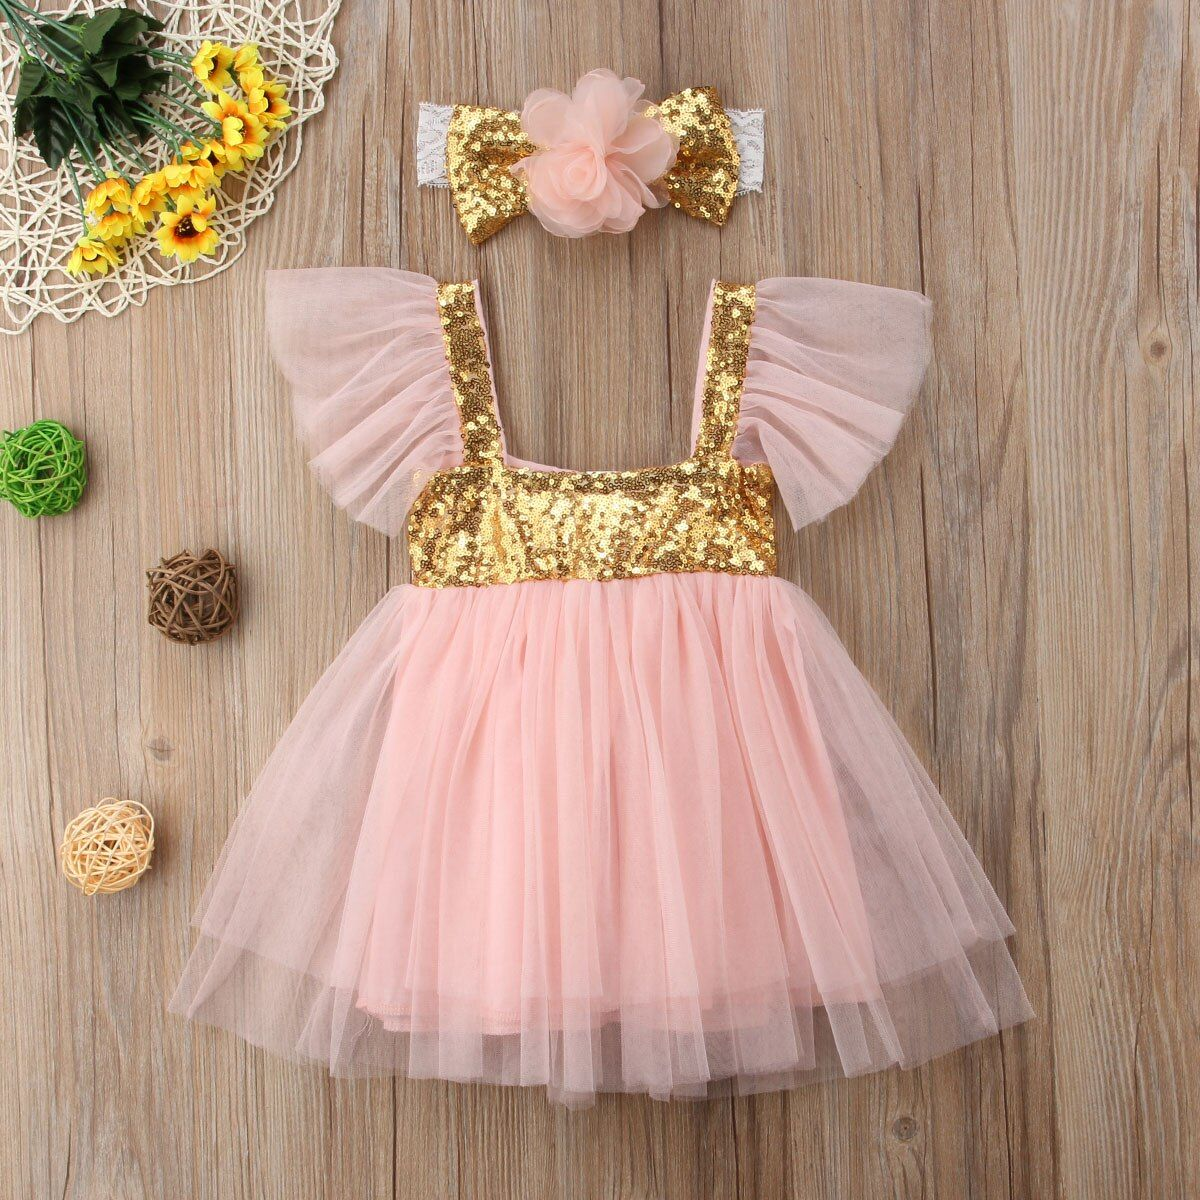 Newborn Sequin Princess Kids Baby Girls Dress Tulle Floral Party Dress Casual Dresses